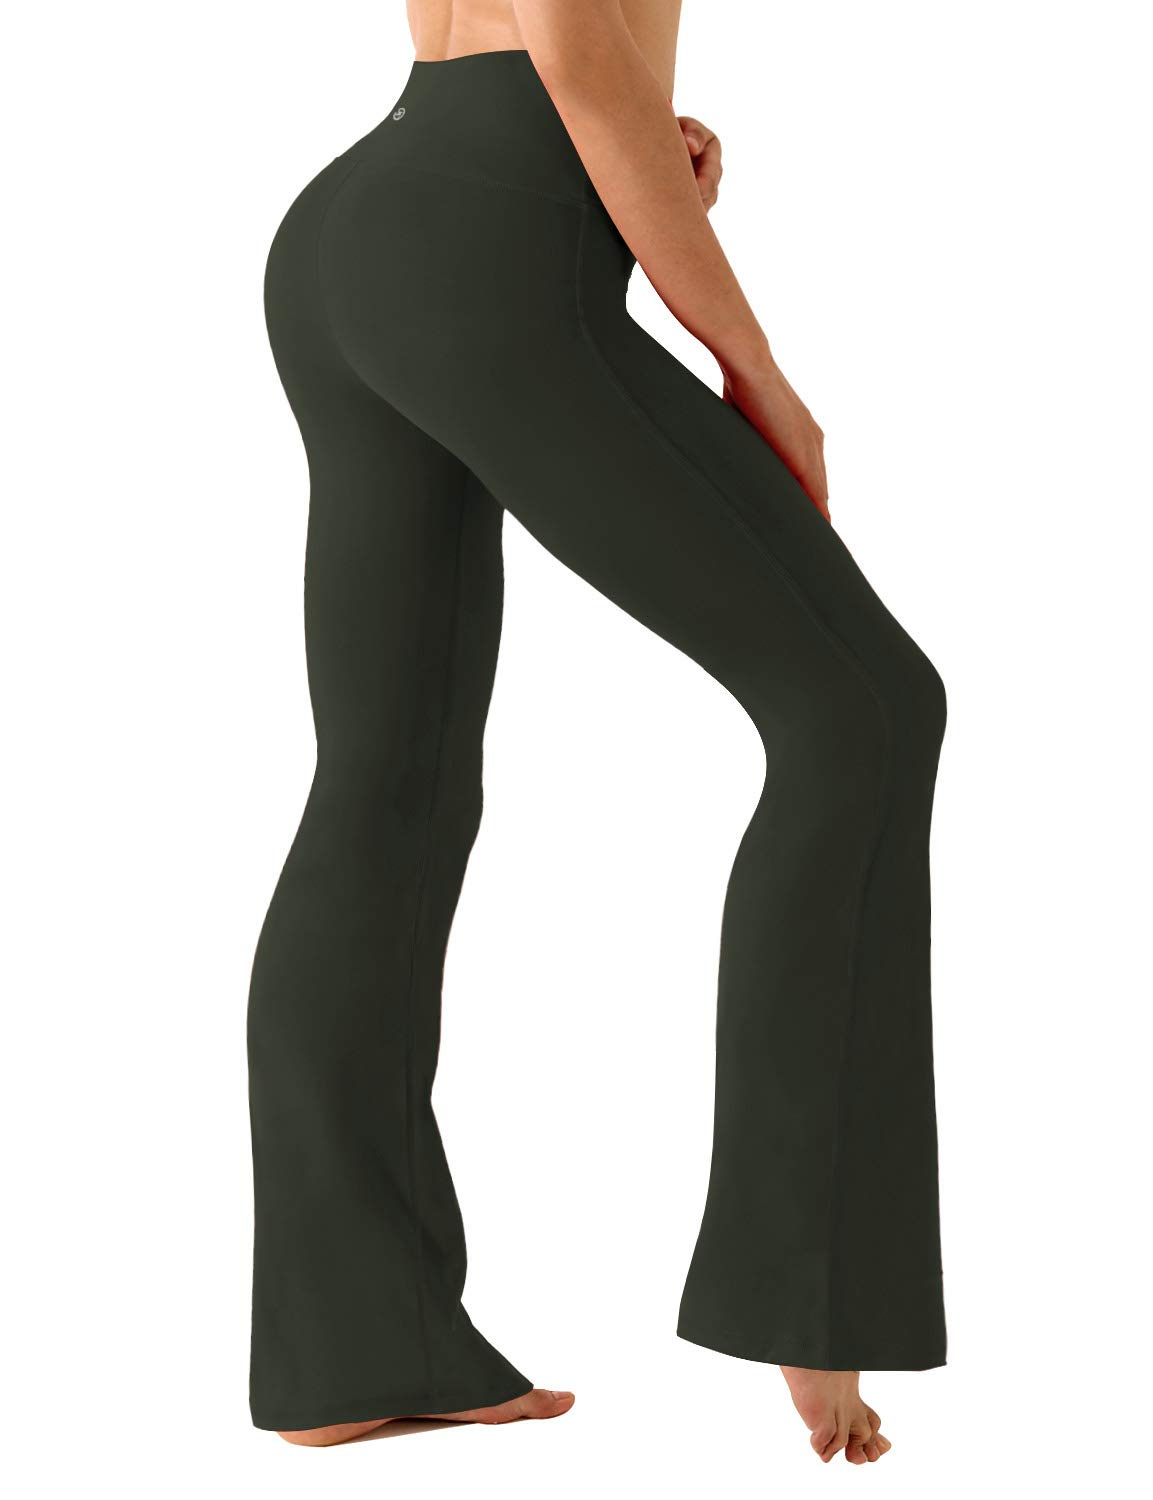 BUBBLELIME Bootleg Yoga Pants High Compressions Running Capris UPF30+ Active Tights Workout Capris by BUBBLELIME